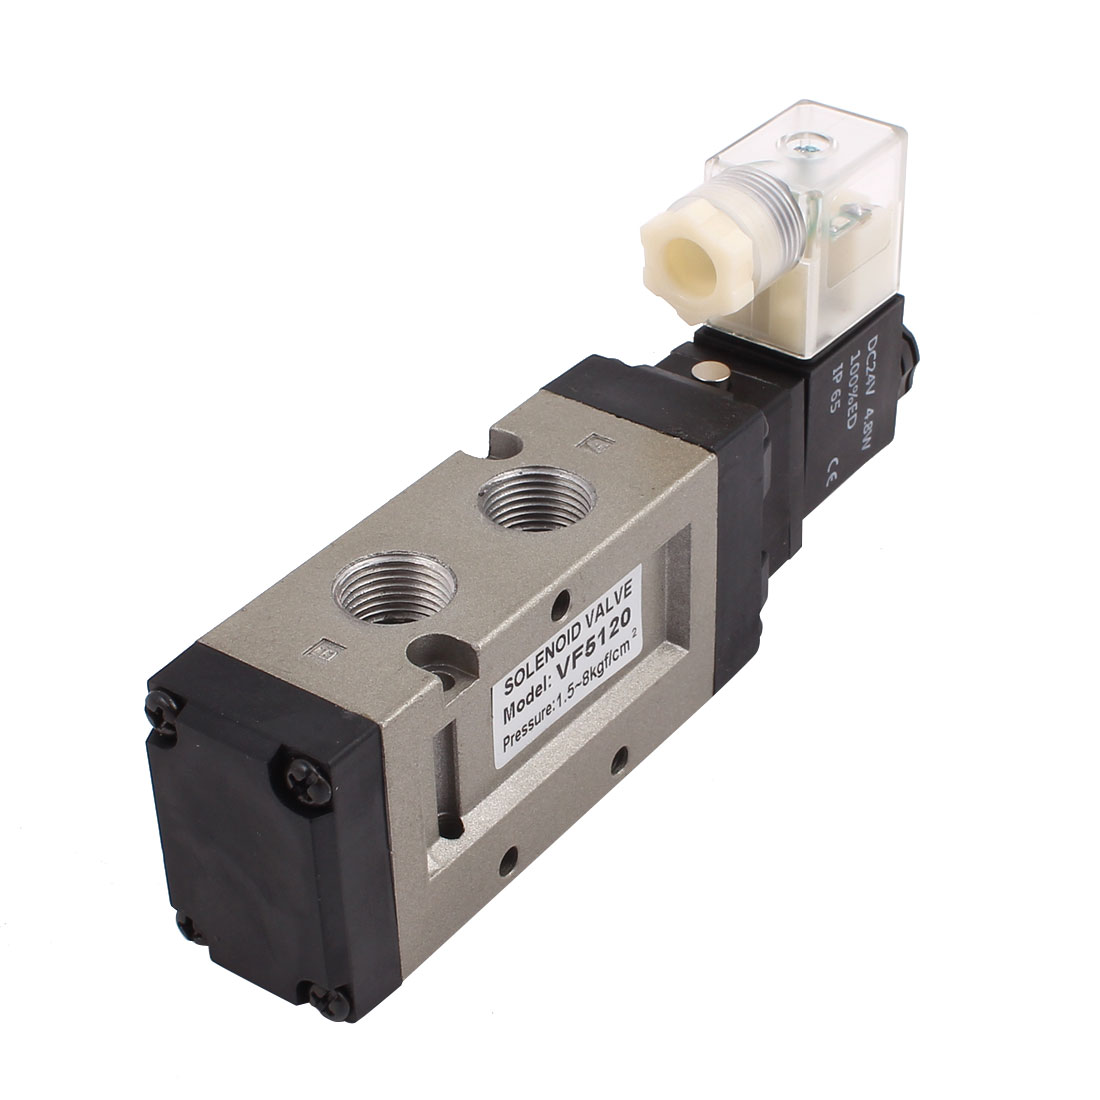 DC 24V 2 Position 5 Way Pneumatic Component Air Control Solenoid Valve DS5120